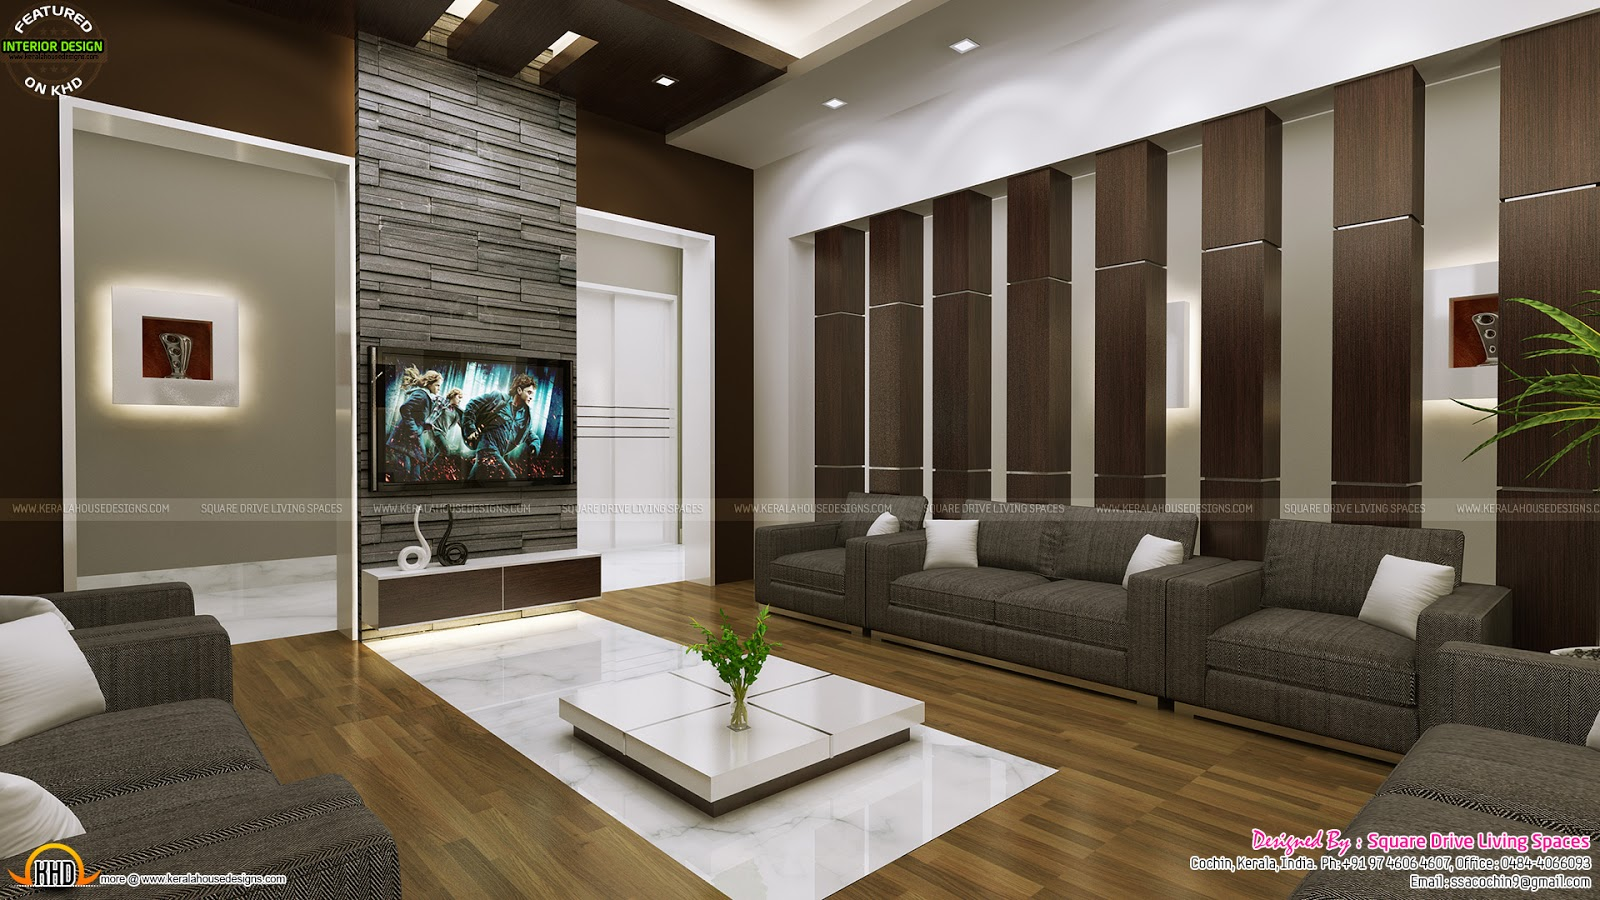 Attractive home interior ideas kerala home design and - House interior design pictures living room ...